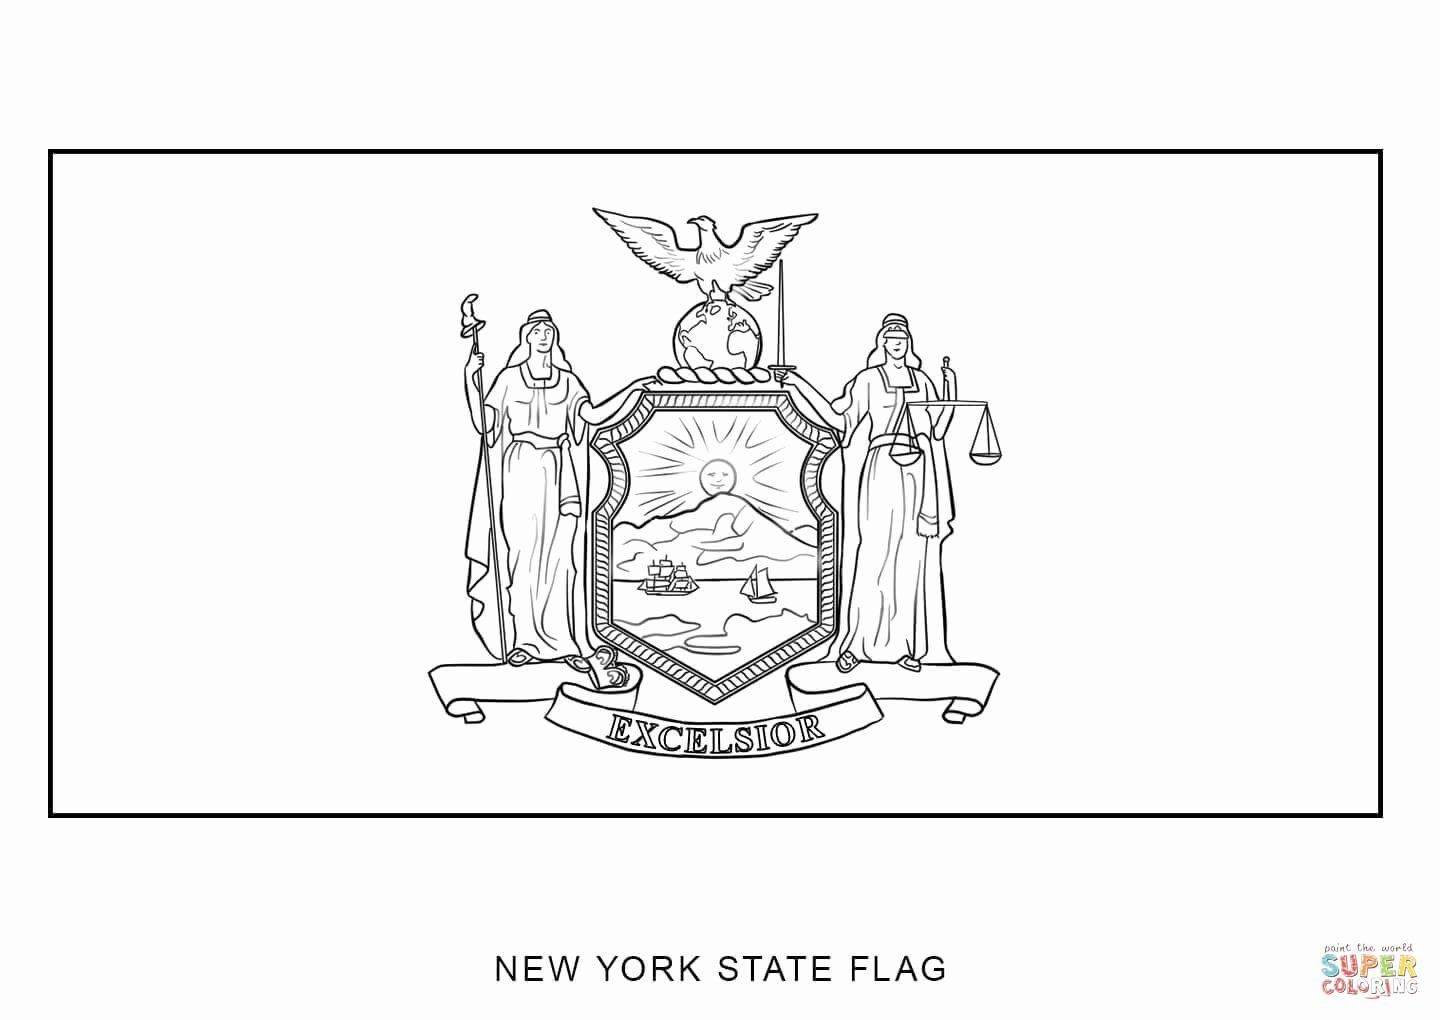 Arizona State Flag Coloring Page Luxury New York Coloring